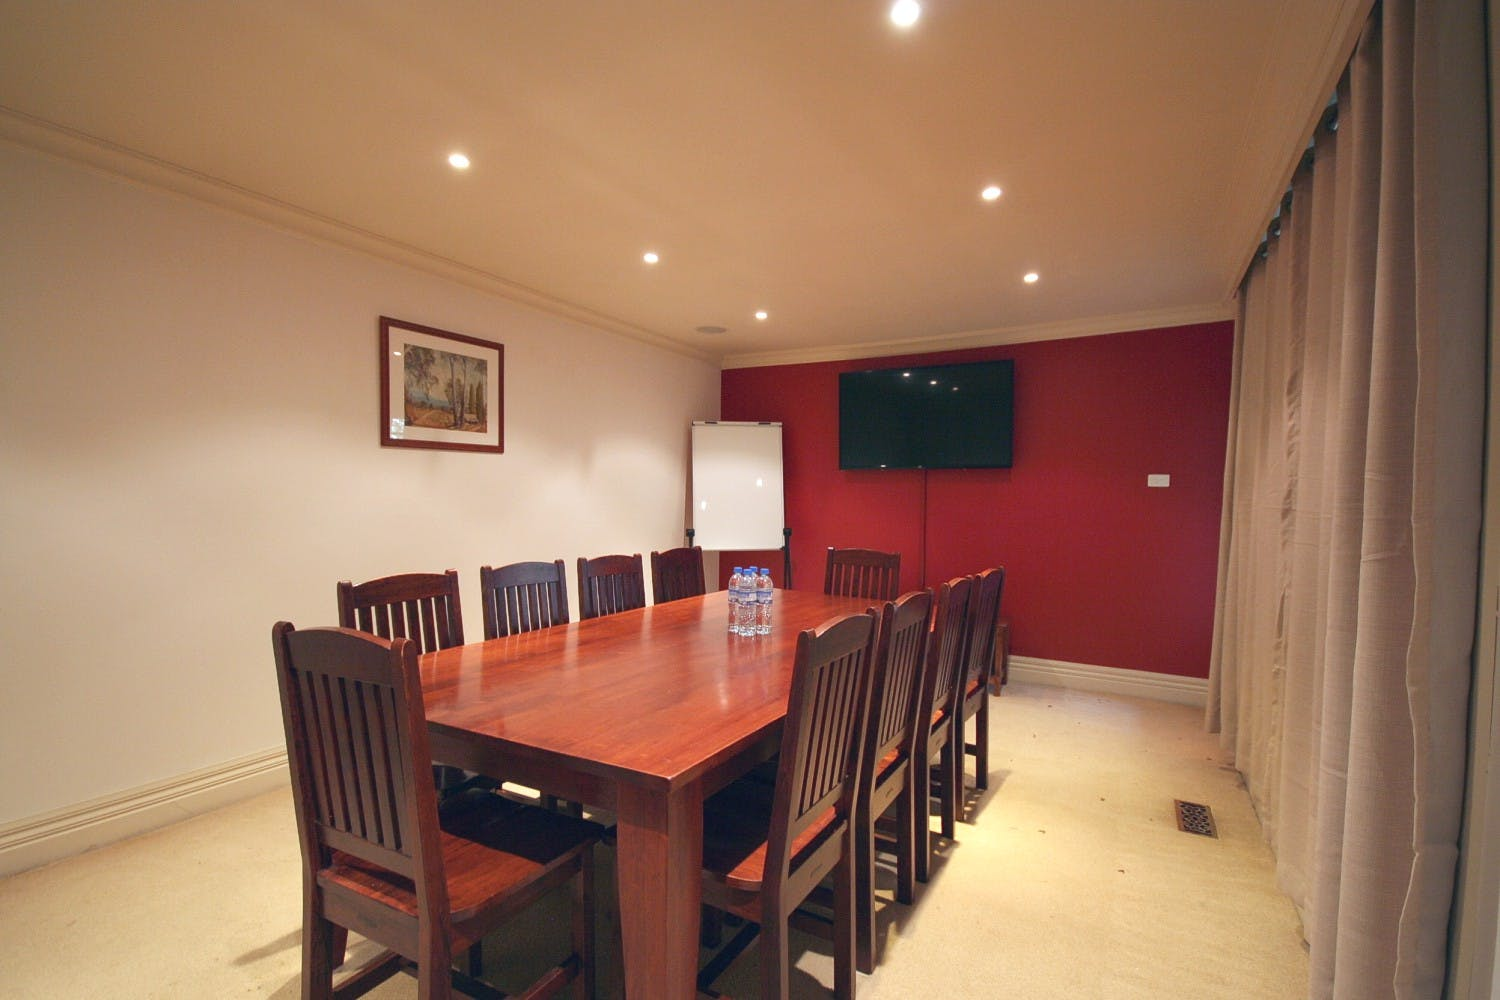 Yarra Ranges Meeting Room, meeting room at Monreale Cottages, image 1